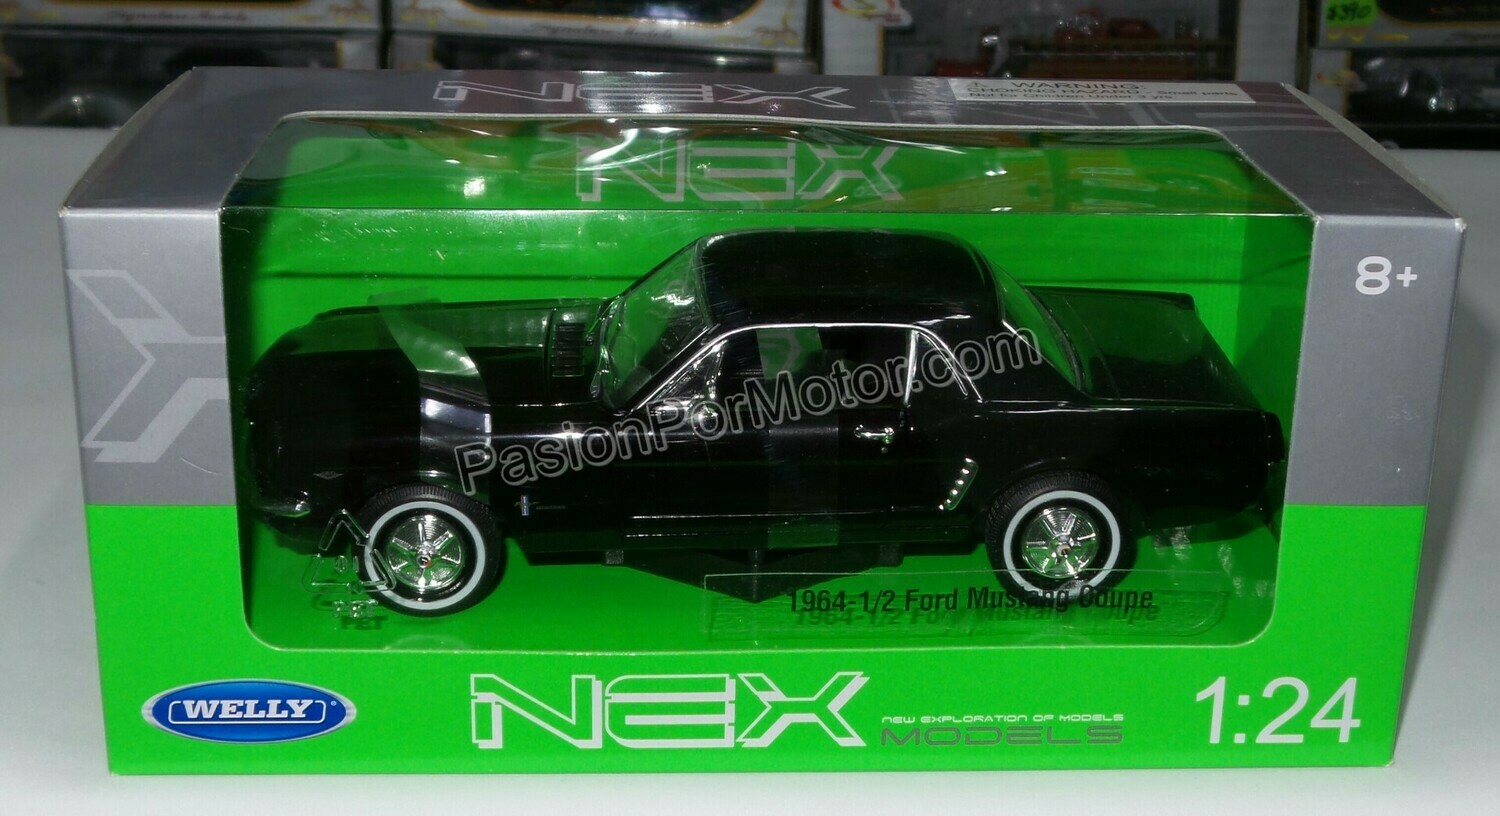 1:24 Ford Mustang Hard Top 1964 1/2 Negro Welly C Caja